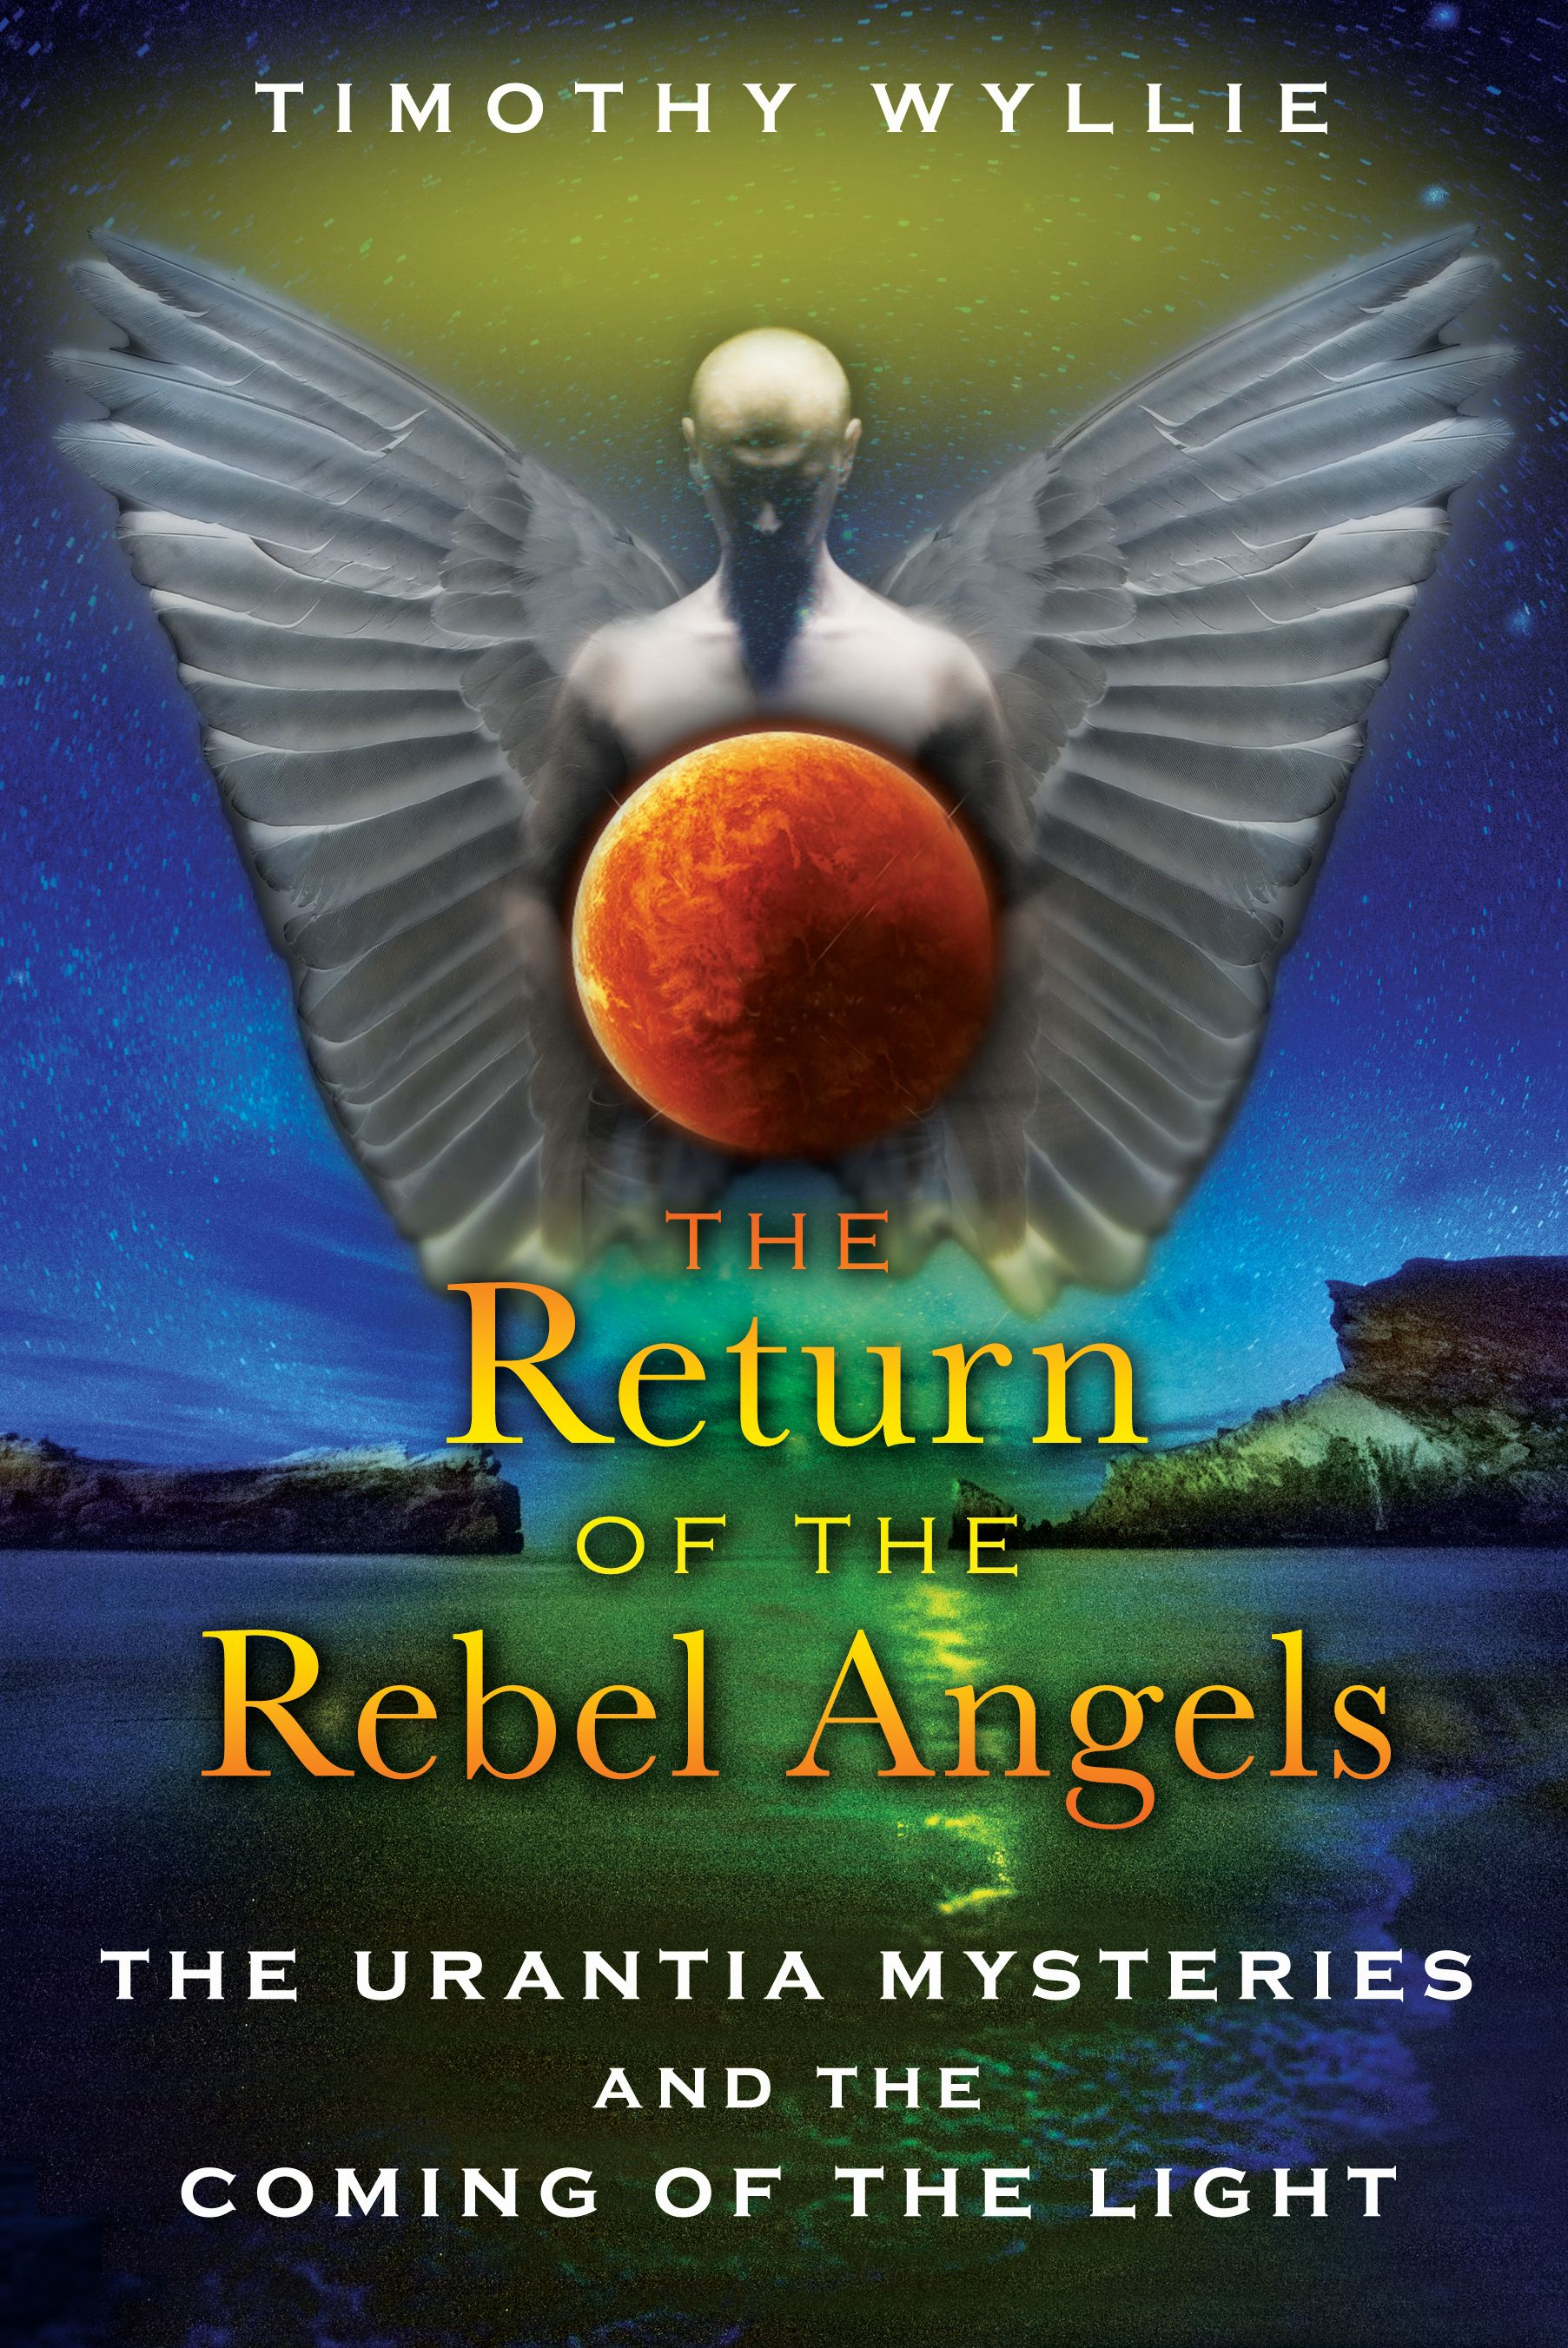 The-return-of-the-rebel-angels-9781591431251_hr